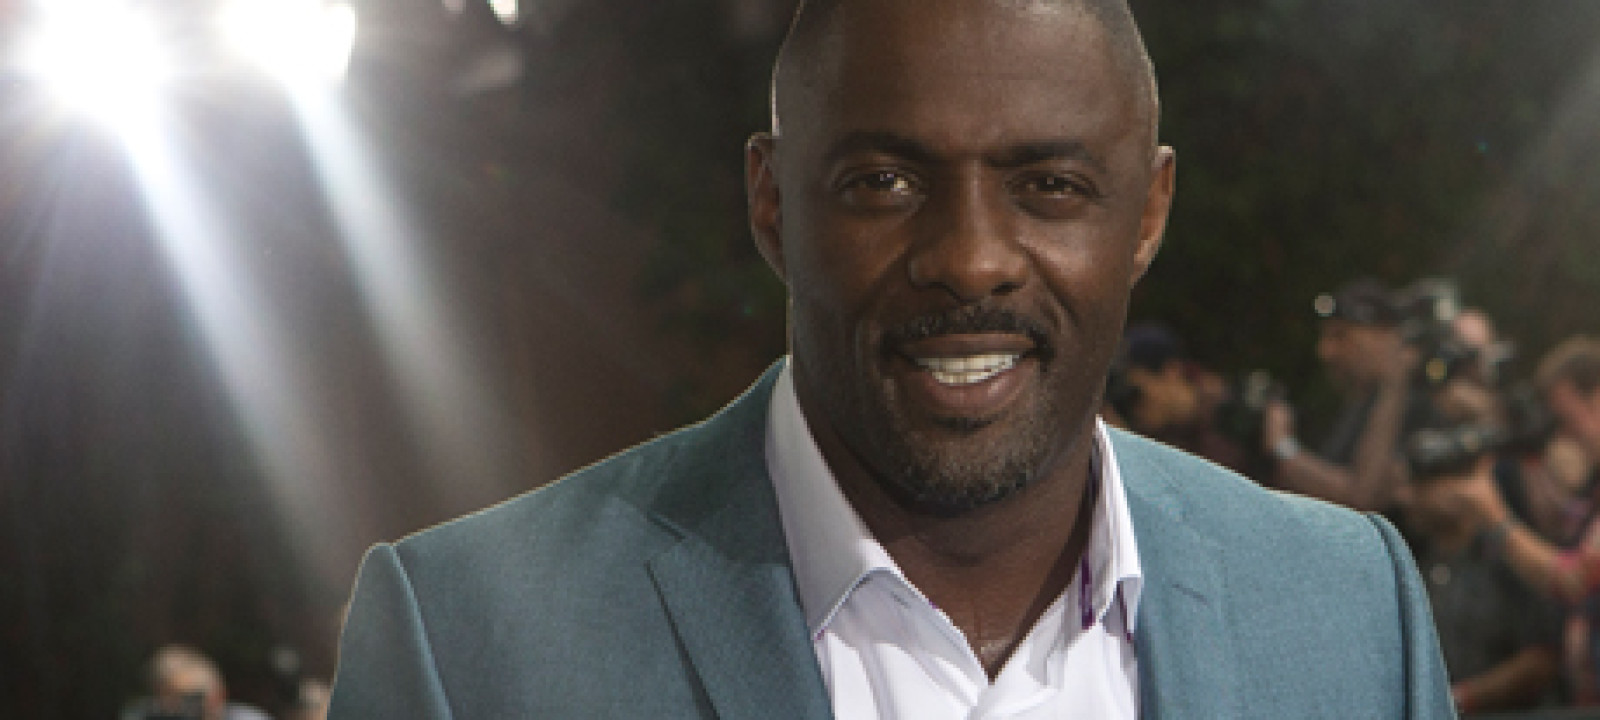 460x300_idriselba_pacificrim_london